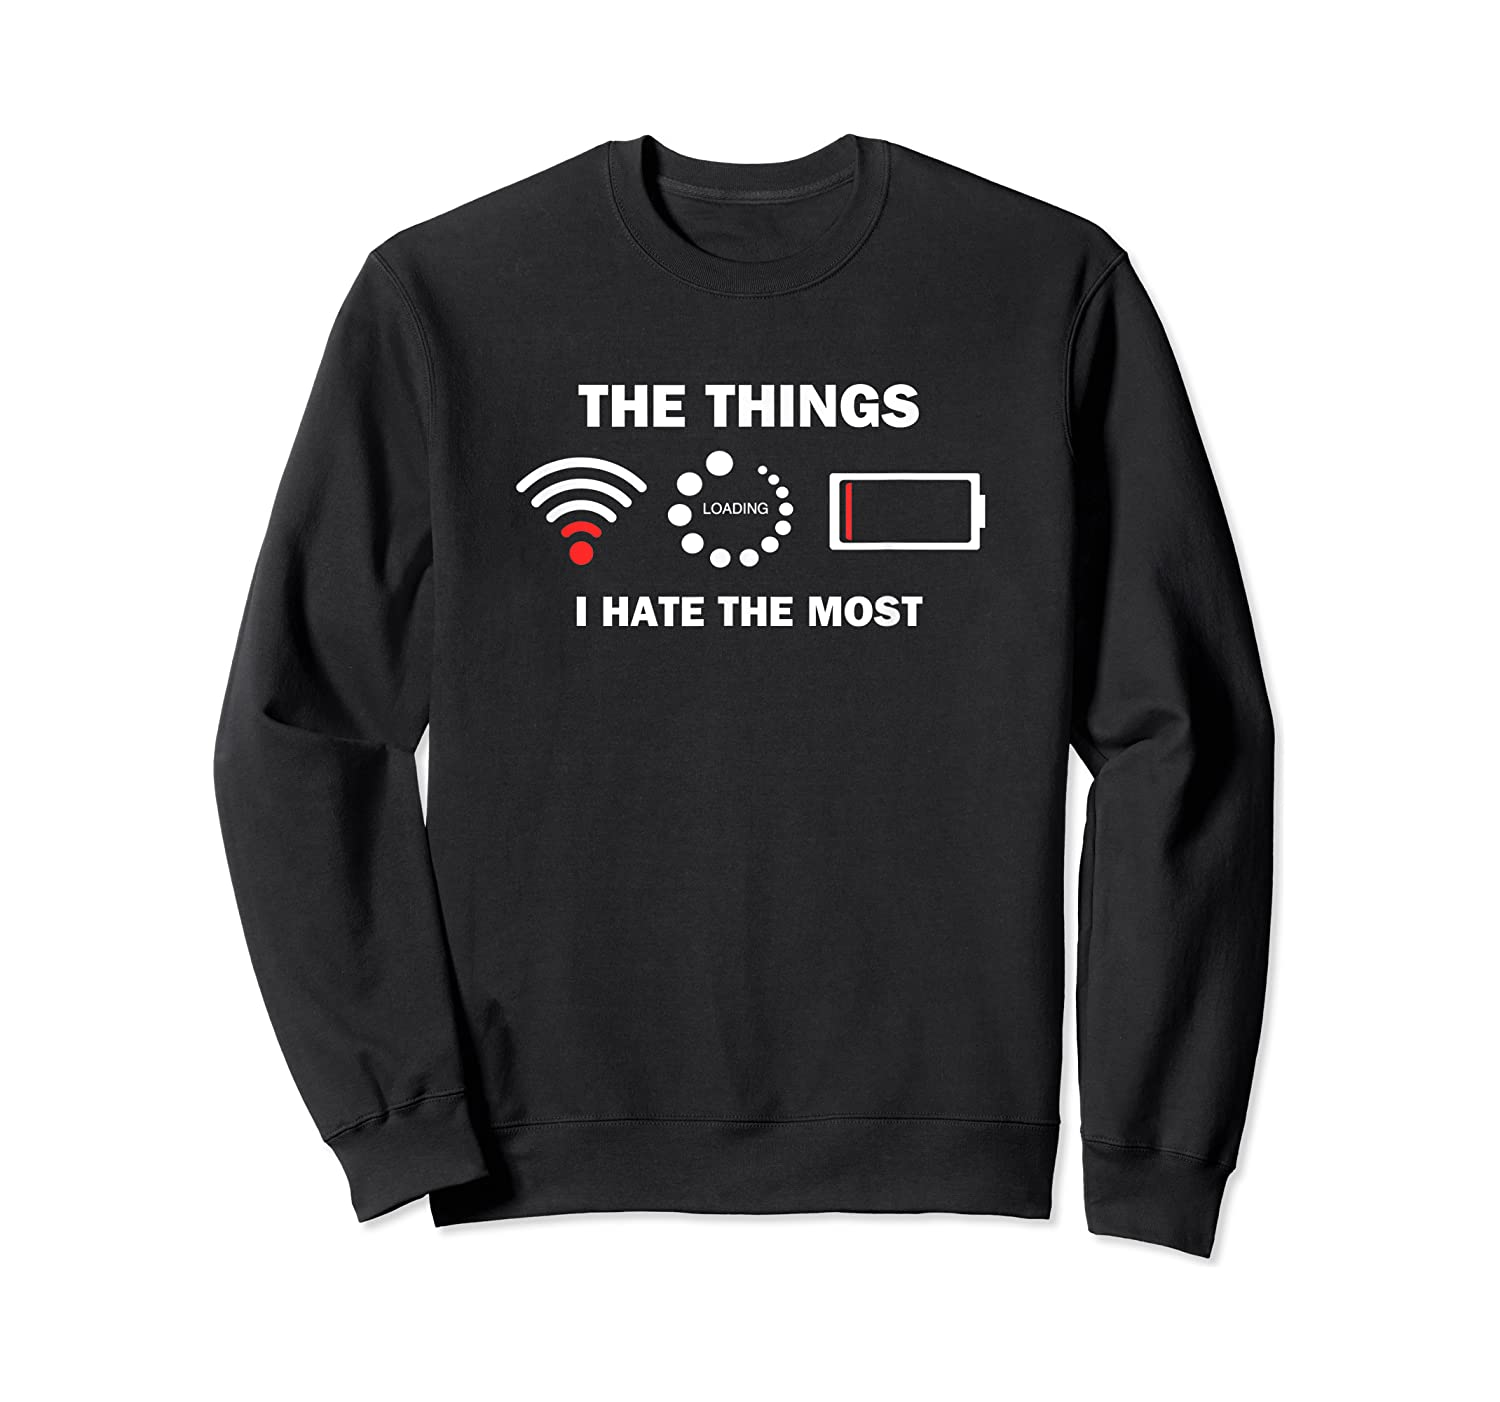 Funny Things I Hate Bad Wifi Signal Buffering Low Battery Shirts Crewneck Sweater